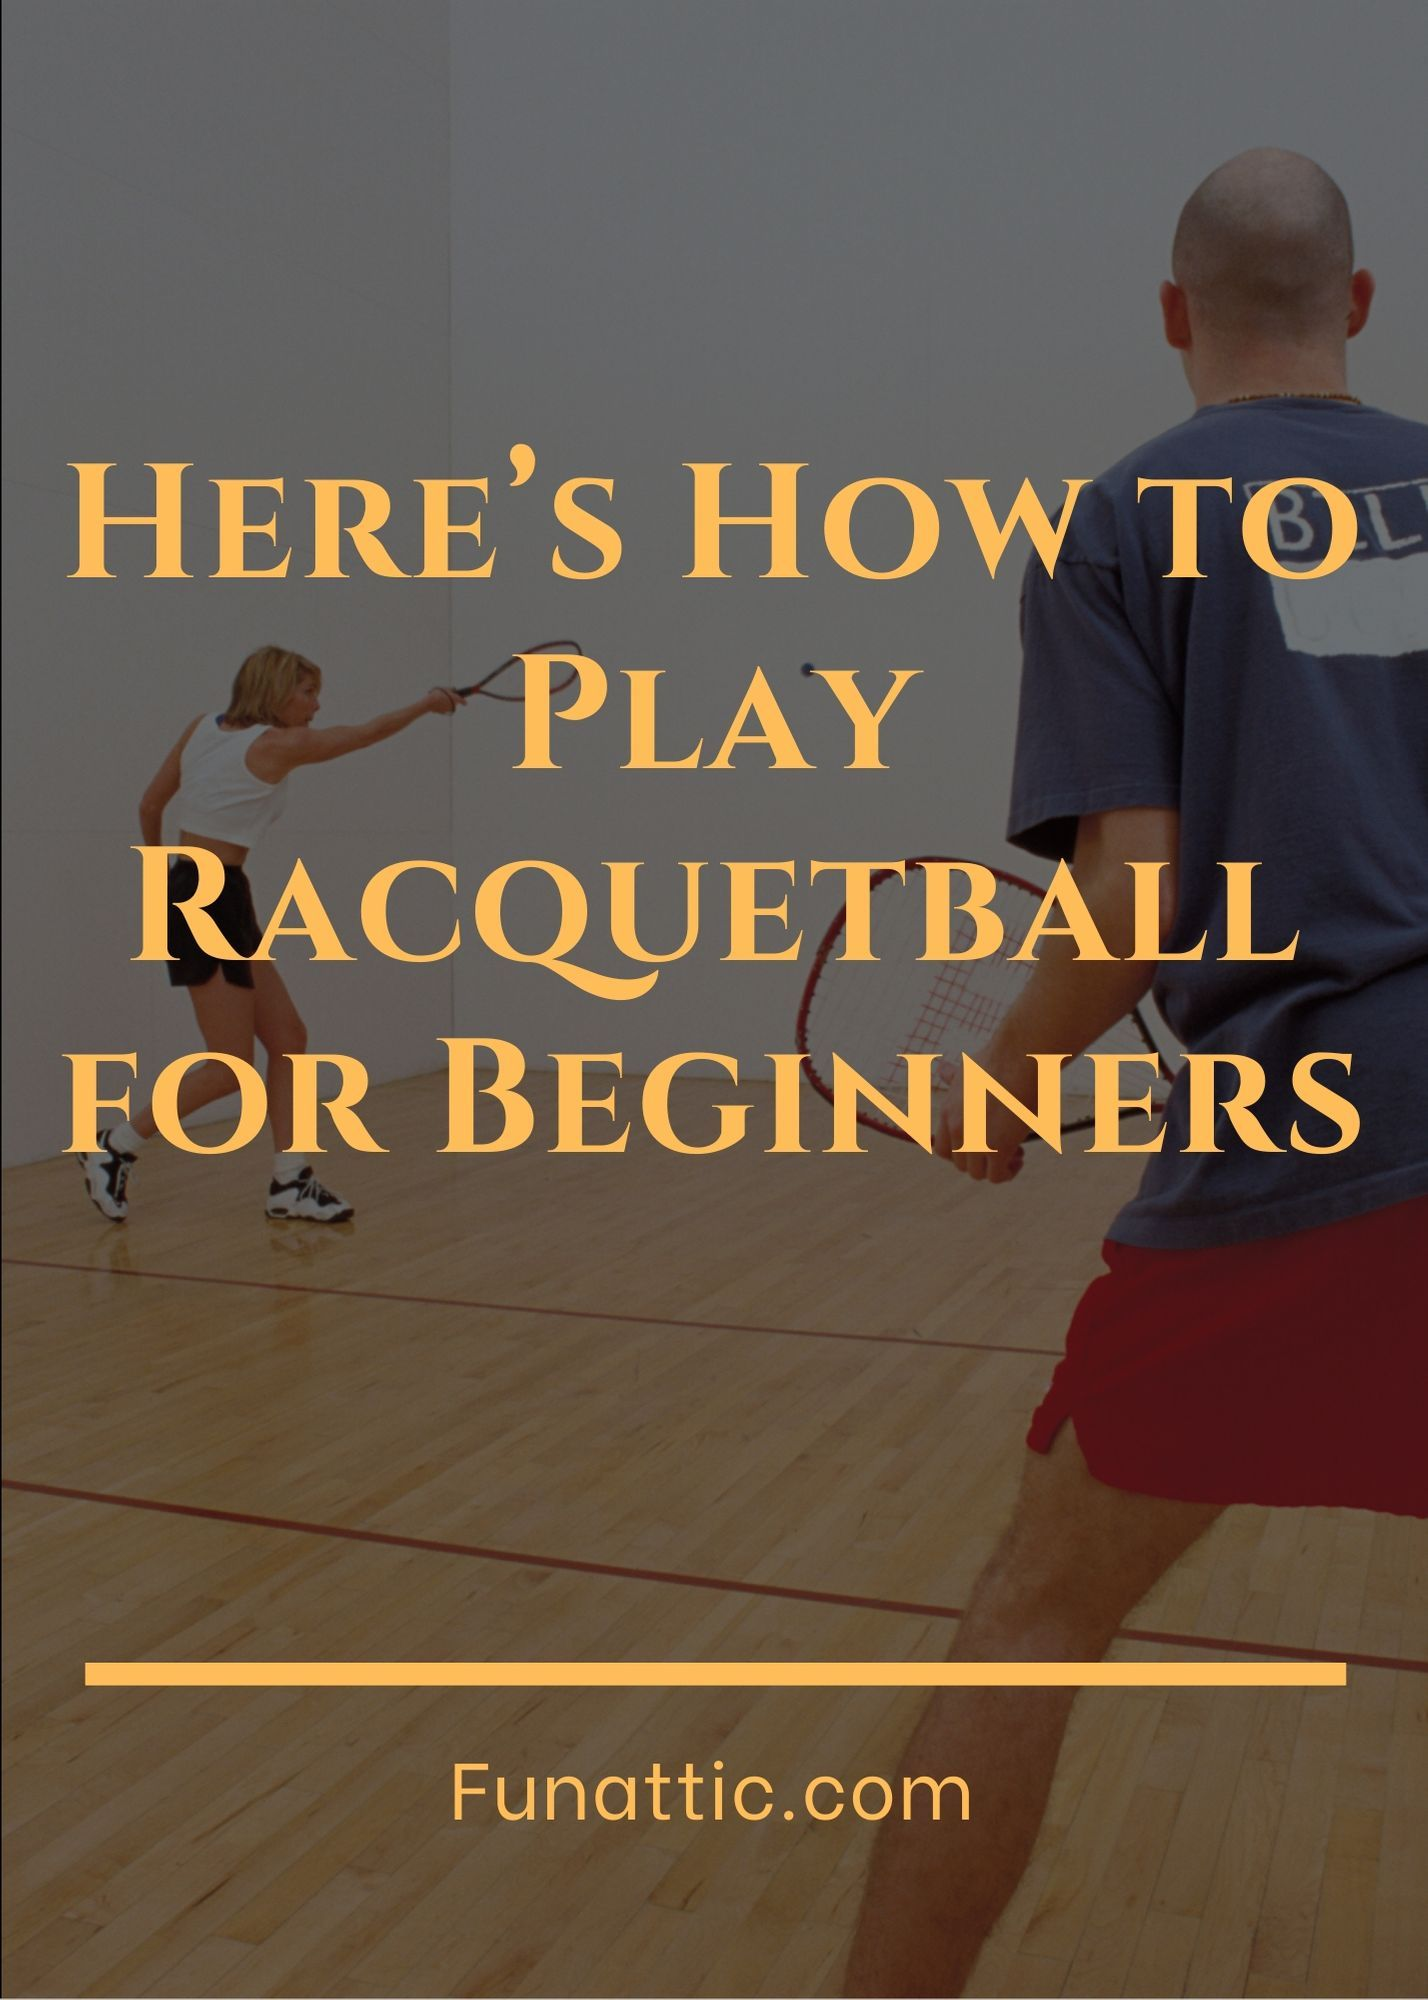 Here's How to Play Racquetball for Beginners FunAttic